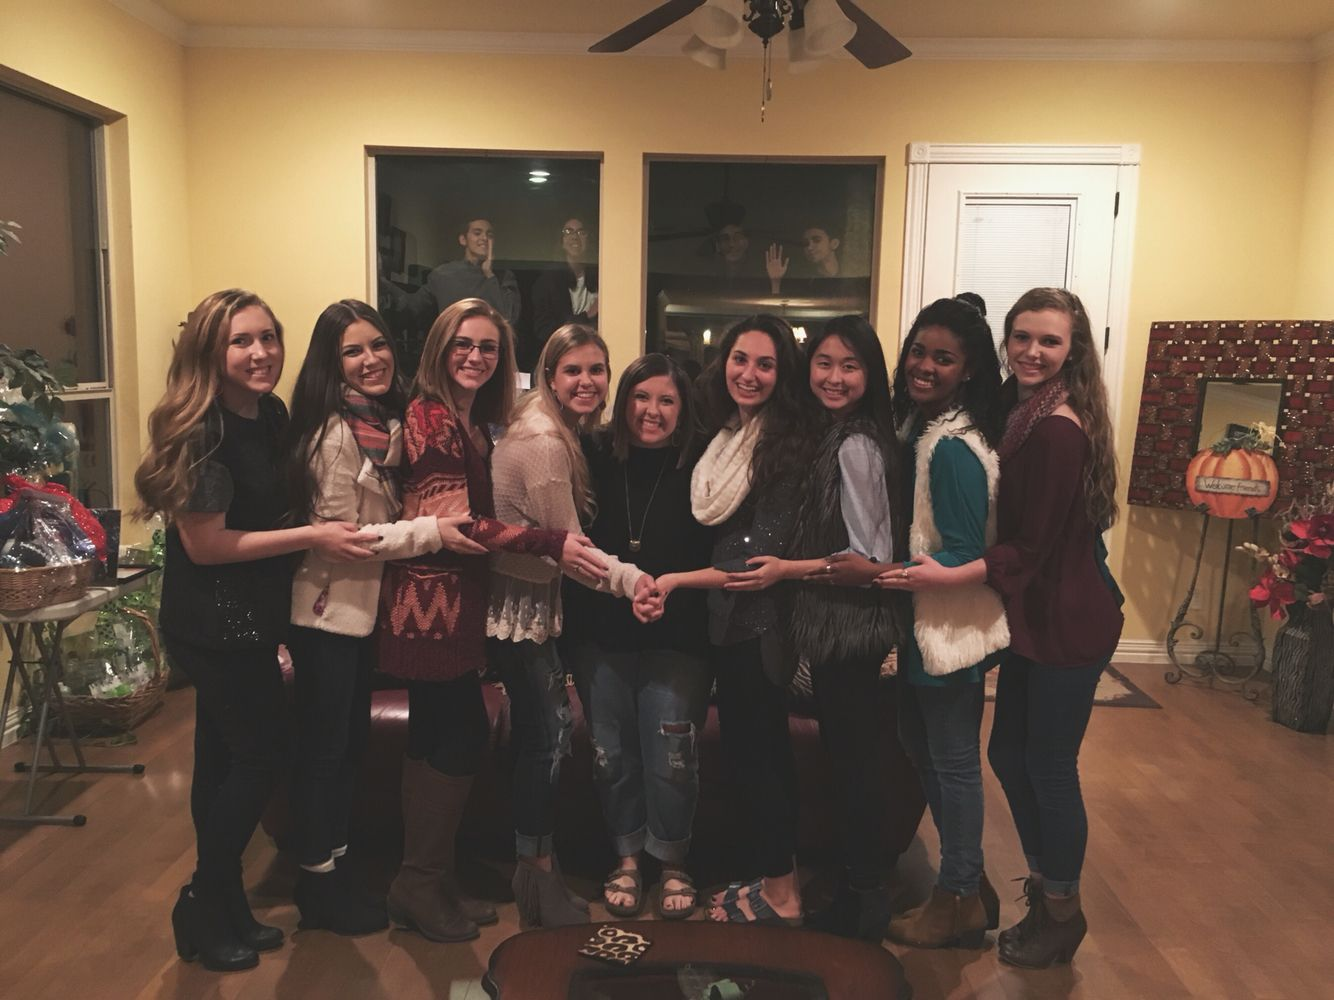 Squadsgiving 2015 (minus some of the guys)